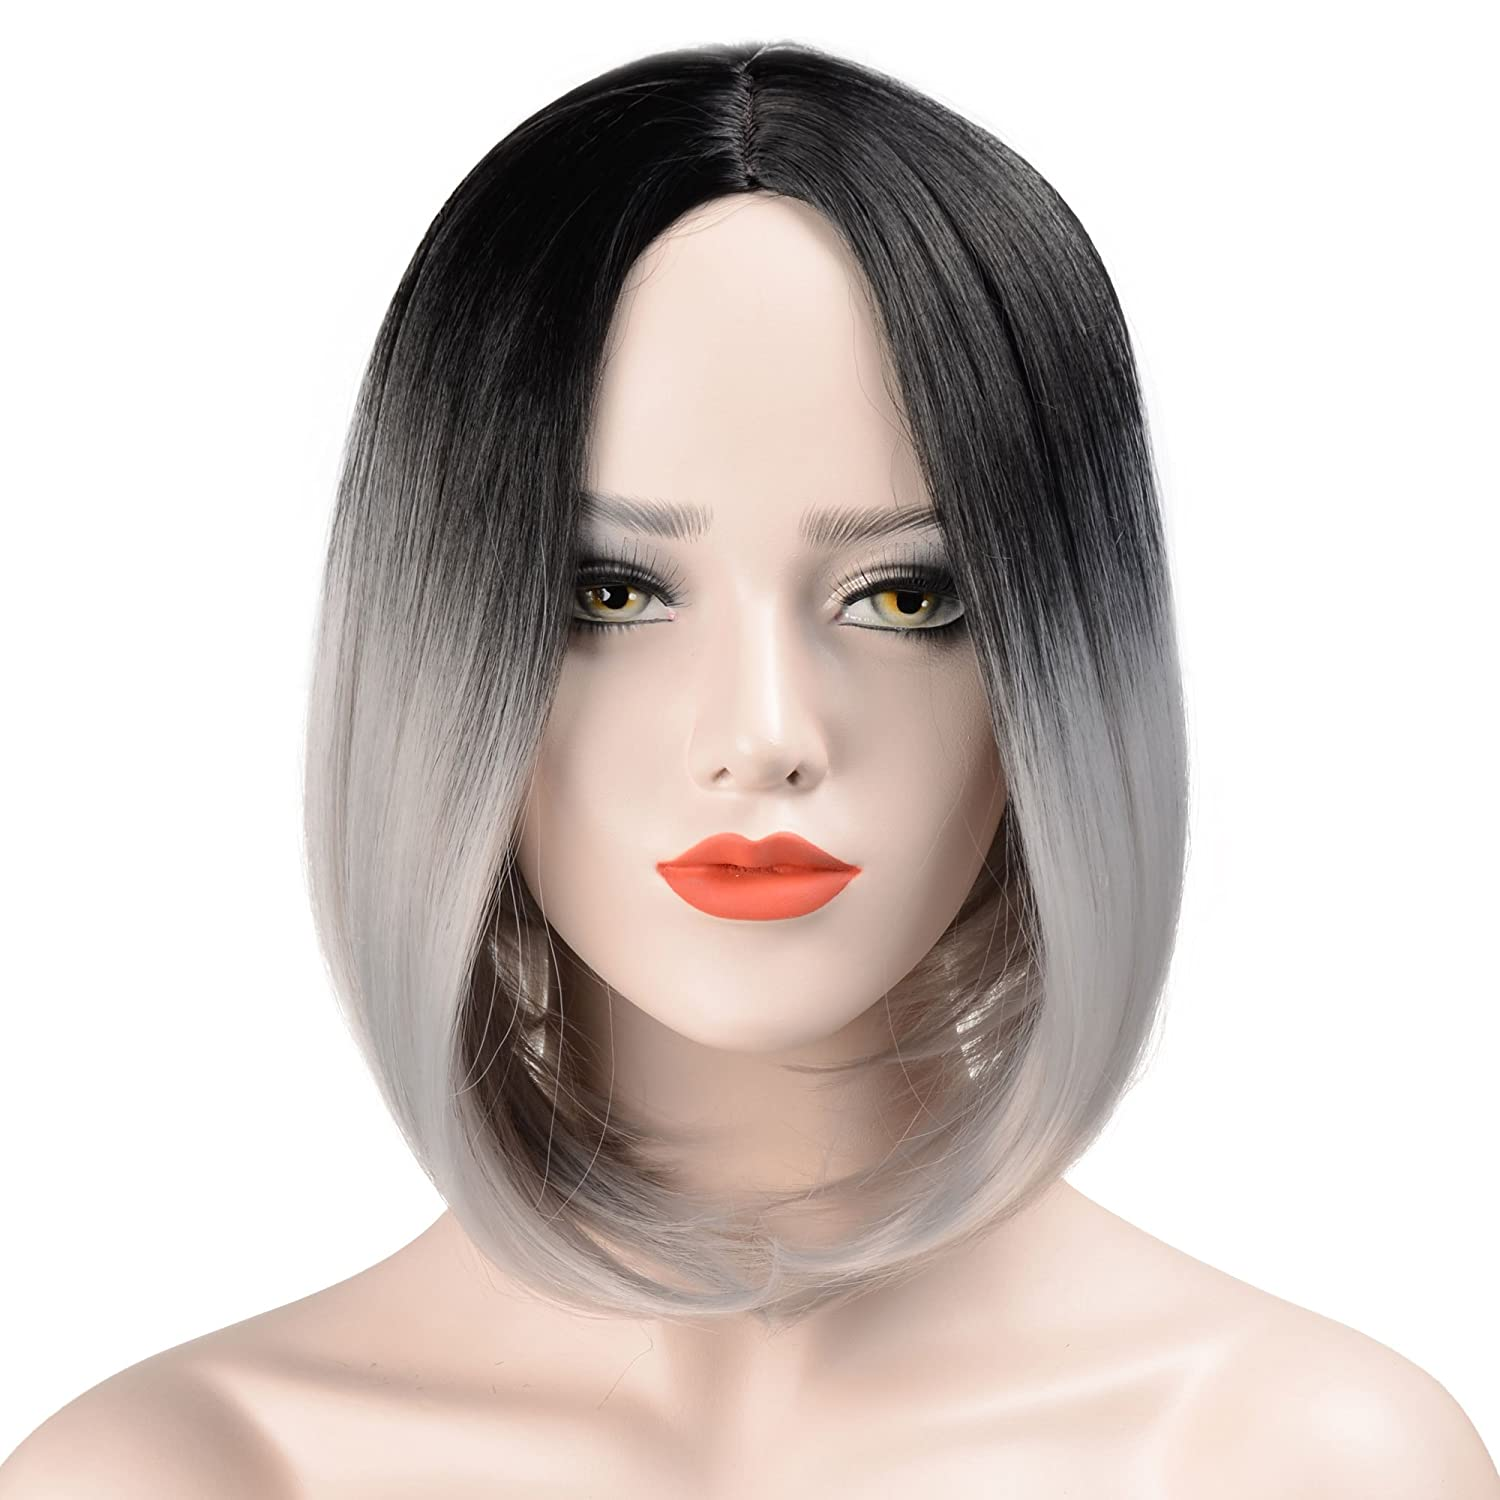 Hawkko Wigs For Black Women Bob Straight Hair Natural Looking Short Ombre Wigs Synthetic Hair Fashion Heat Resistant Full Head(Black/Grey)